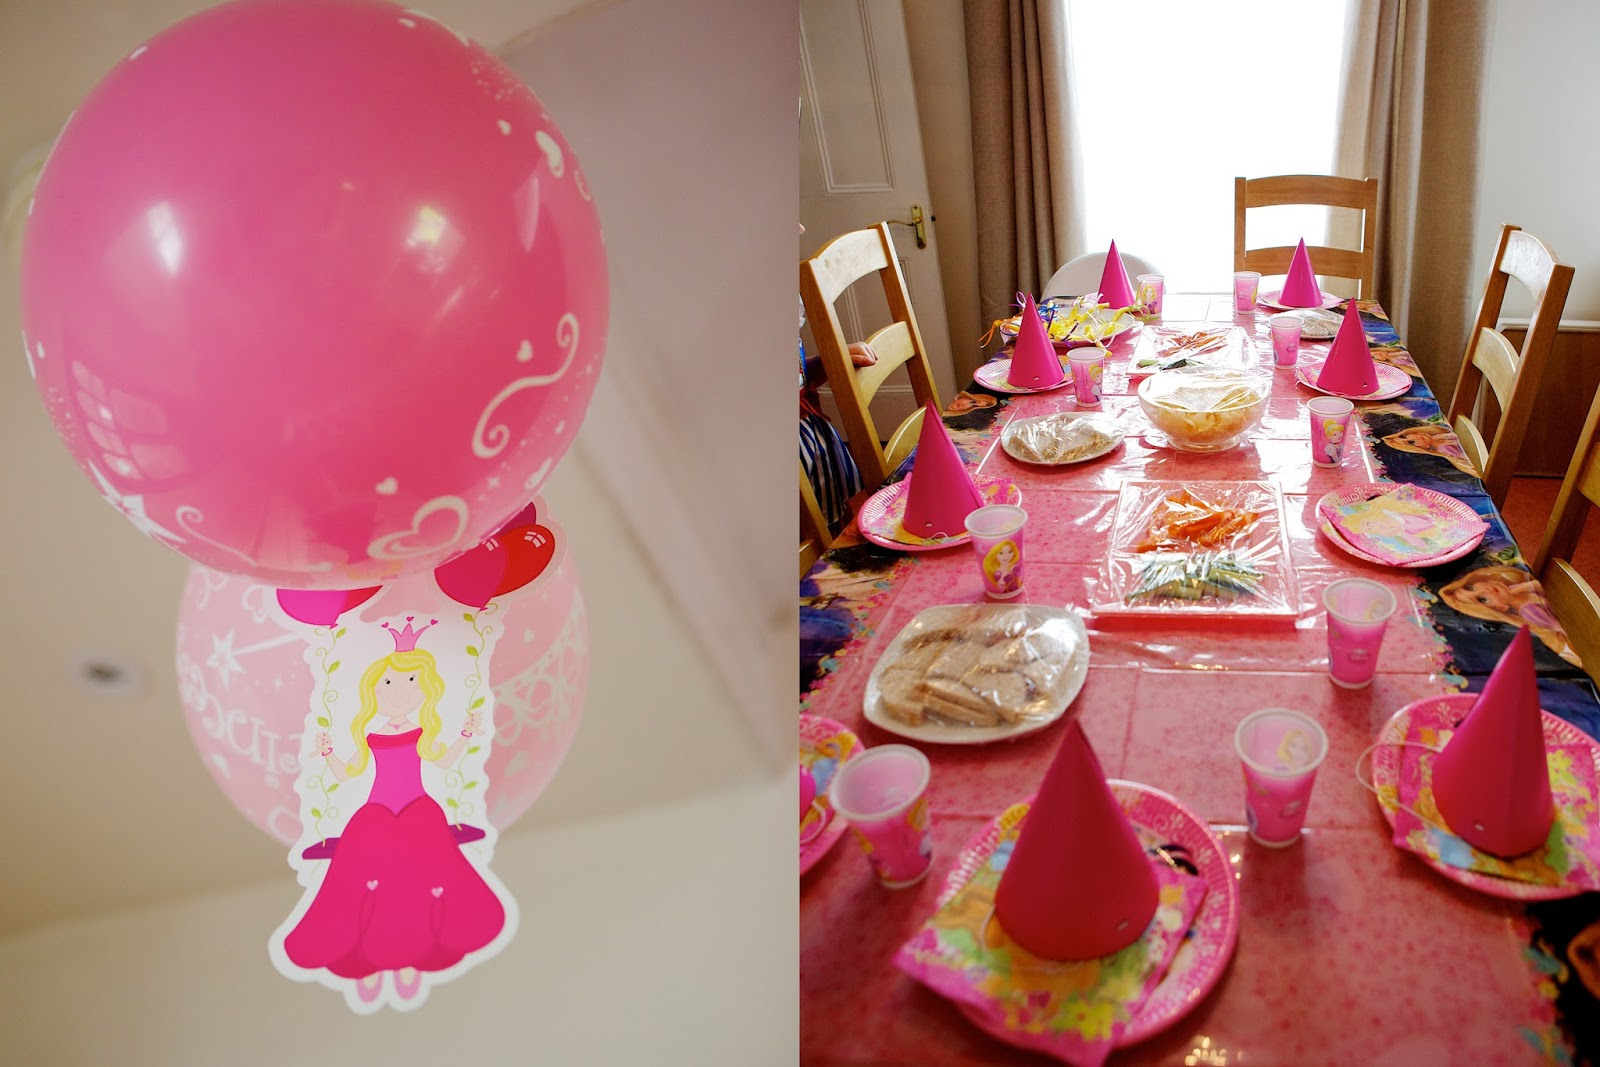 Graces 4th Birthday - Planning a Rapunzel Party...! - Keeping it ...